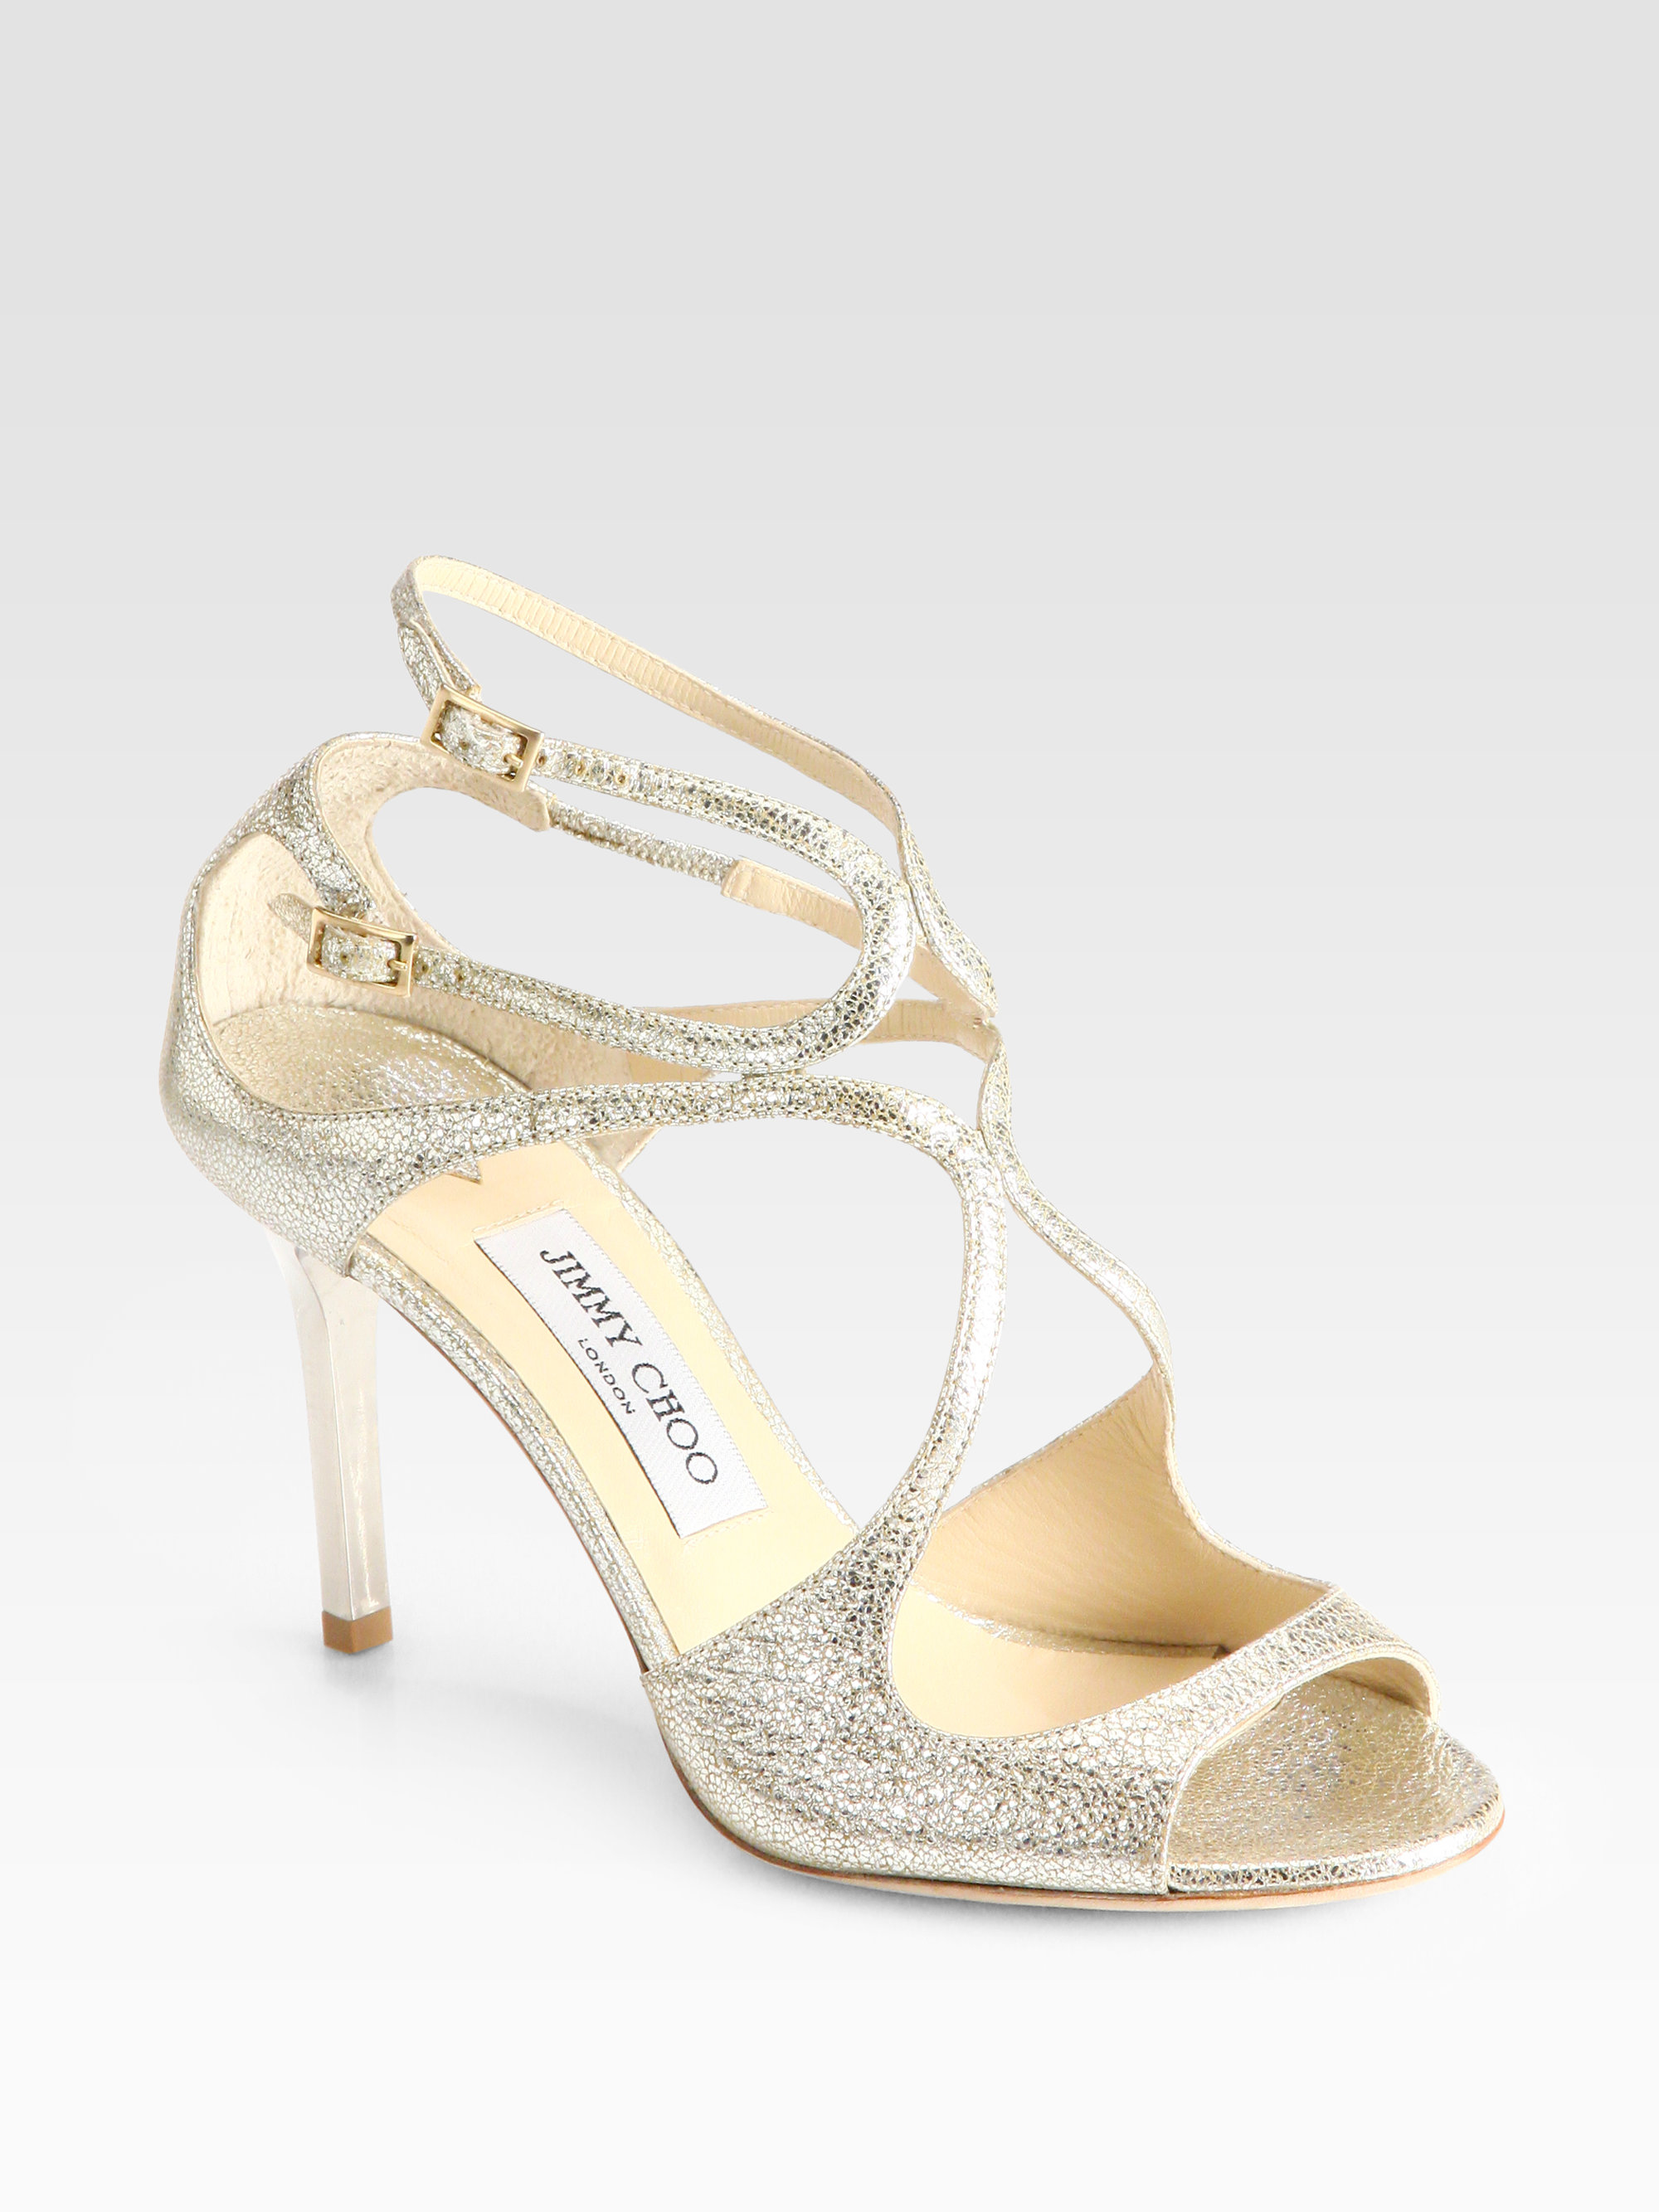 Ivette 85 sandals - Metallic Jimmy Choo London Latest Discount For Sale Online Sale Hot Sale Sale Affordable 2th32Cn